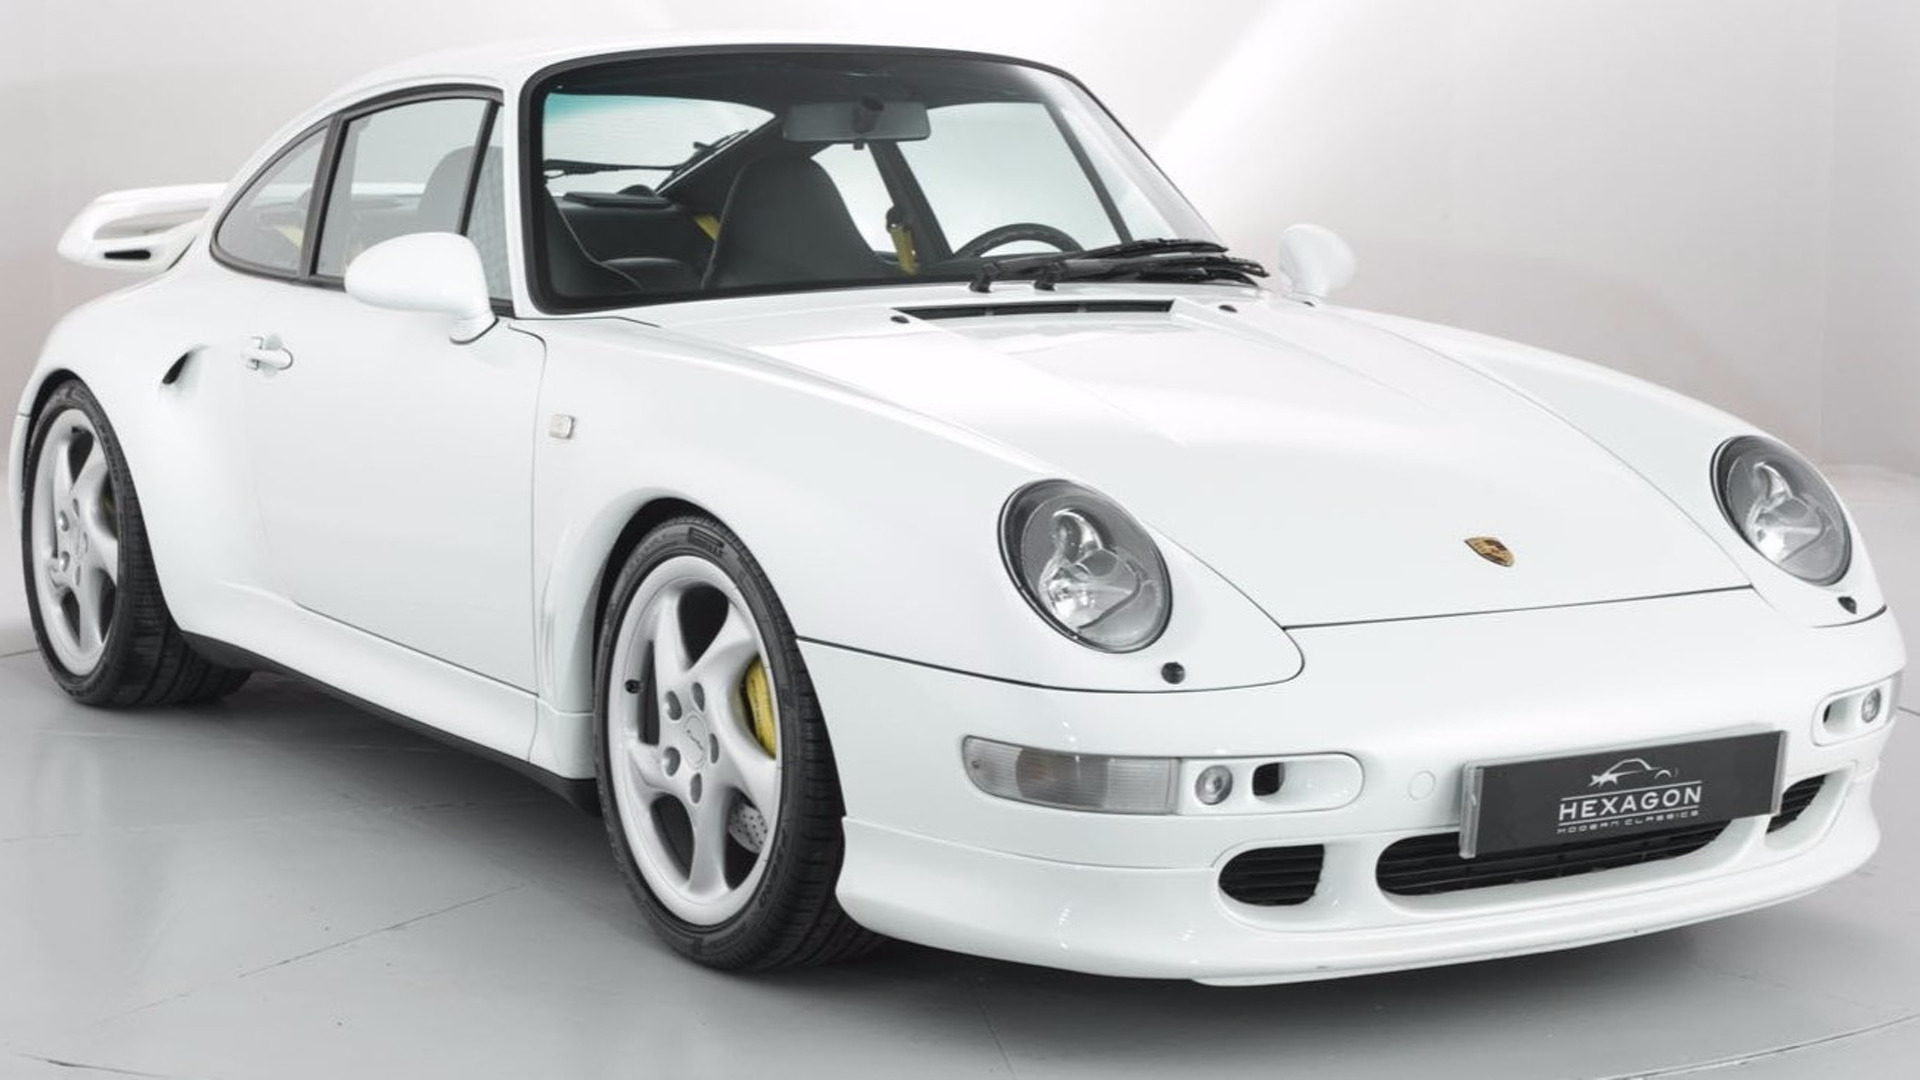 Add A Rare Porsche 993 Turbo X50 To Your Collection For 200k